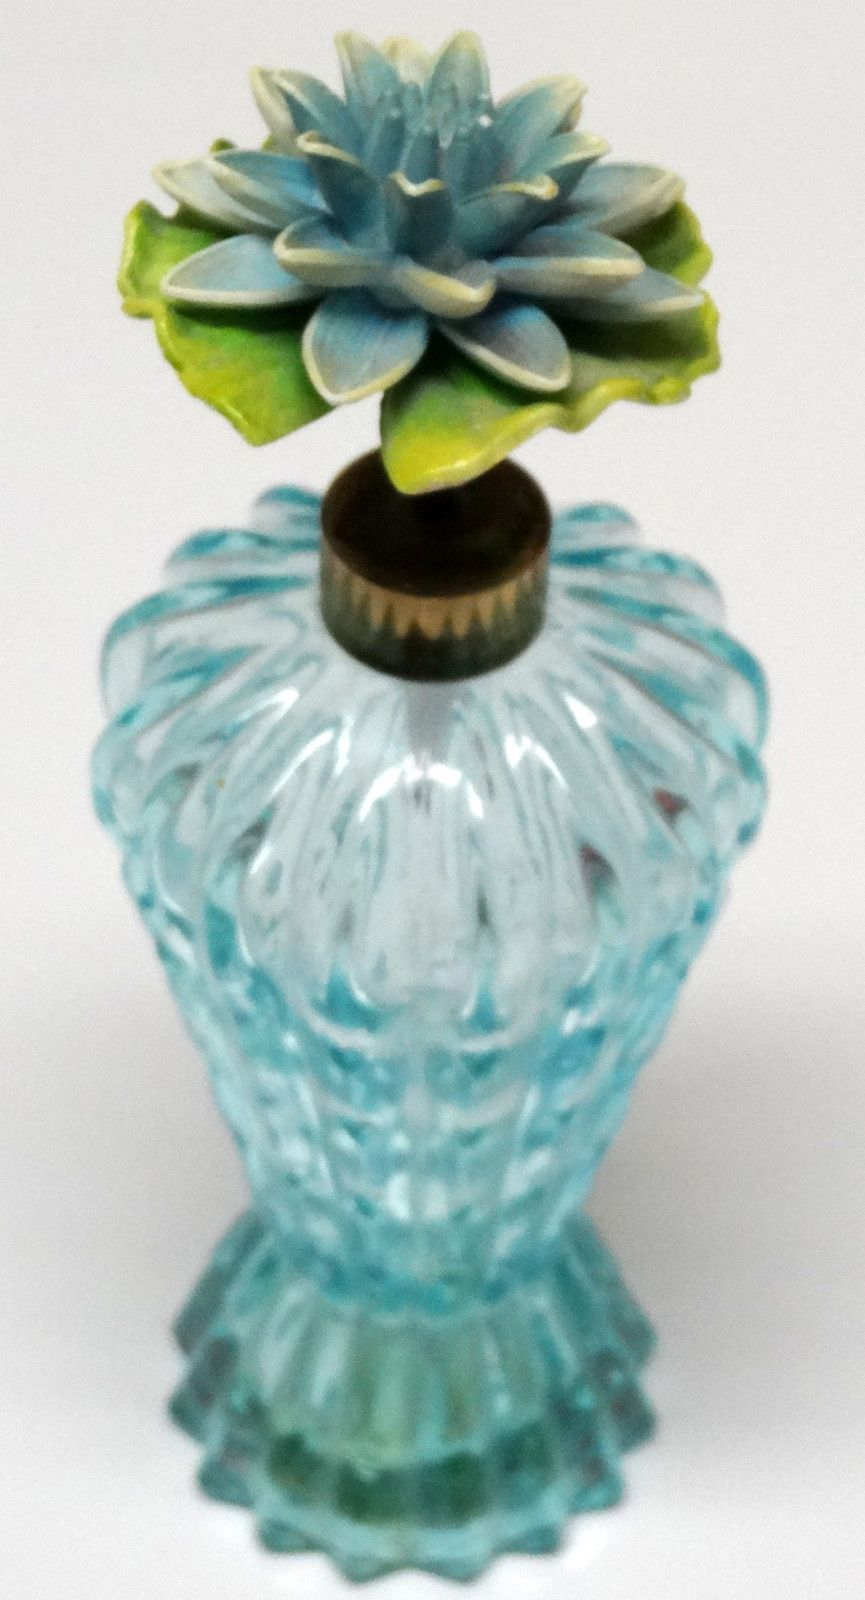 Vintage blue flower top perfume bottle ges gesch made in west vintage blue flower top perfume bottle ges gesch made in west germany beauty ebay izmirmasajfo